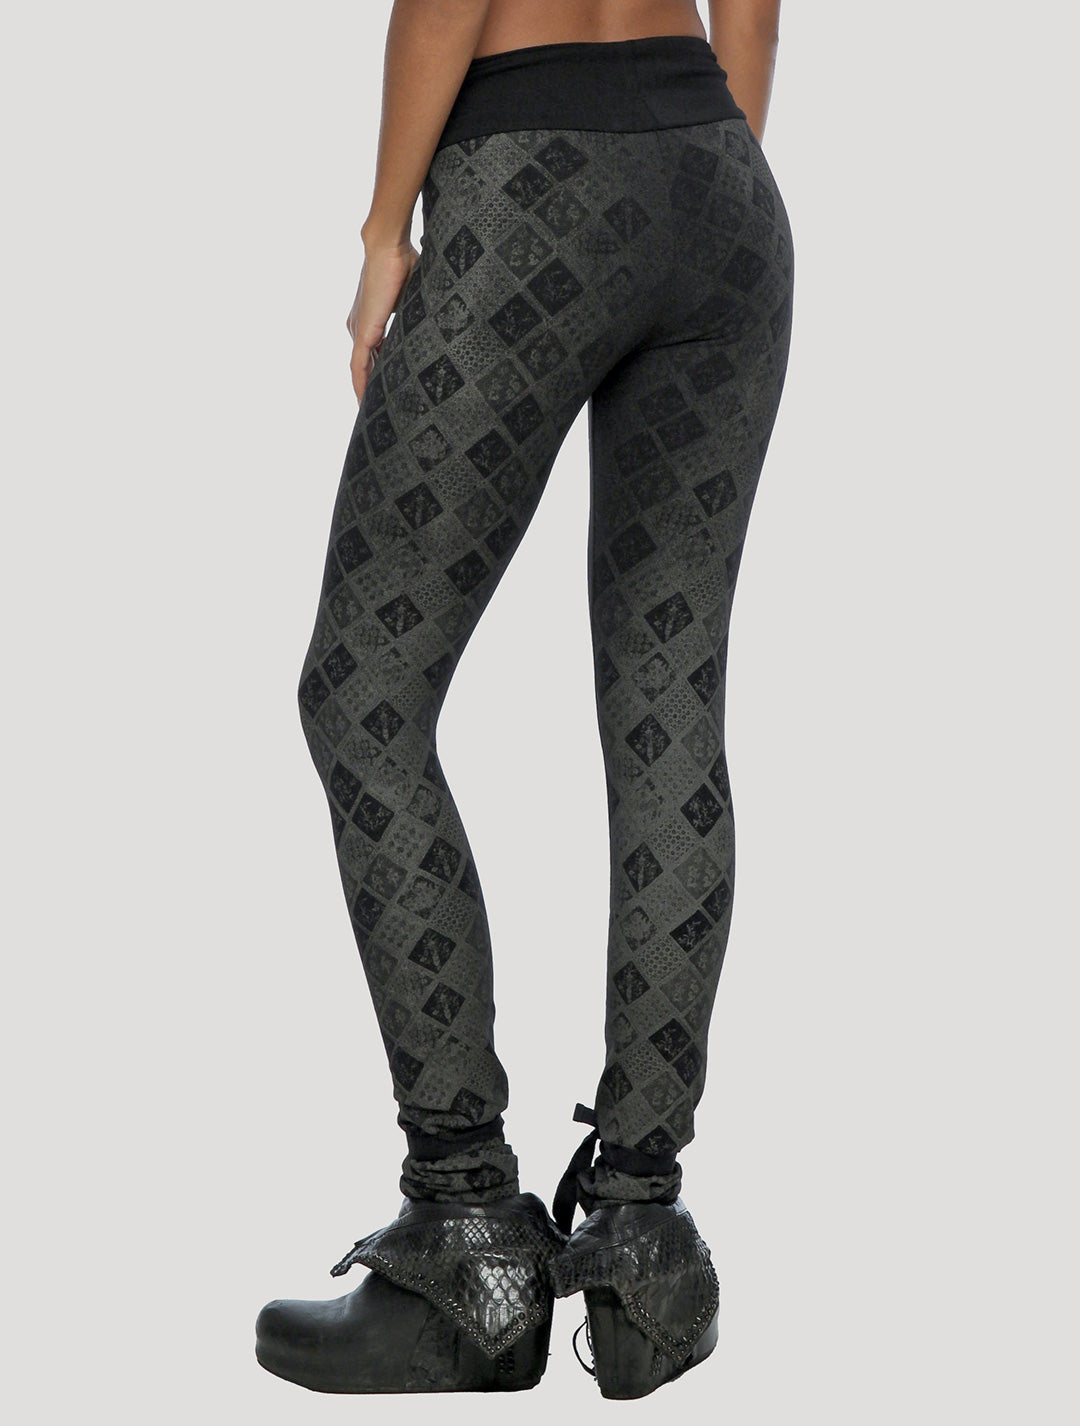 Psylo Fashion's Batik Leggings streetwear organic yoga leggings